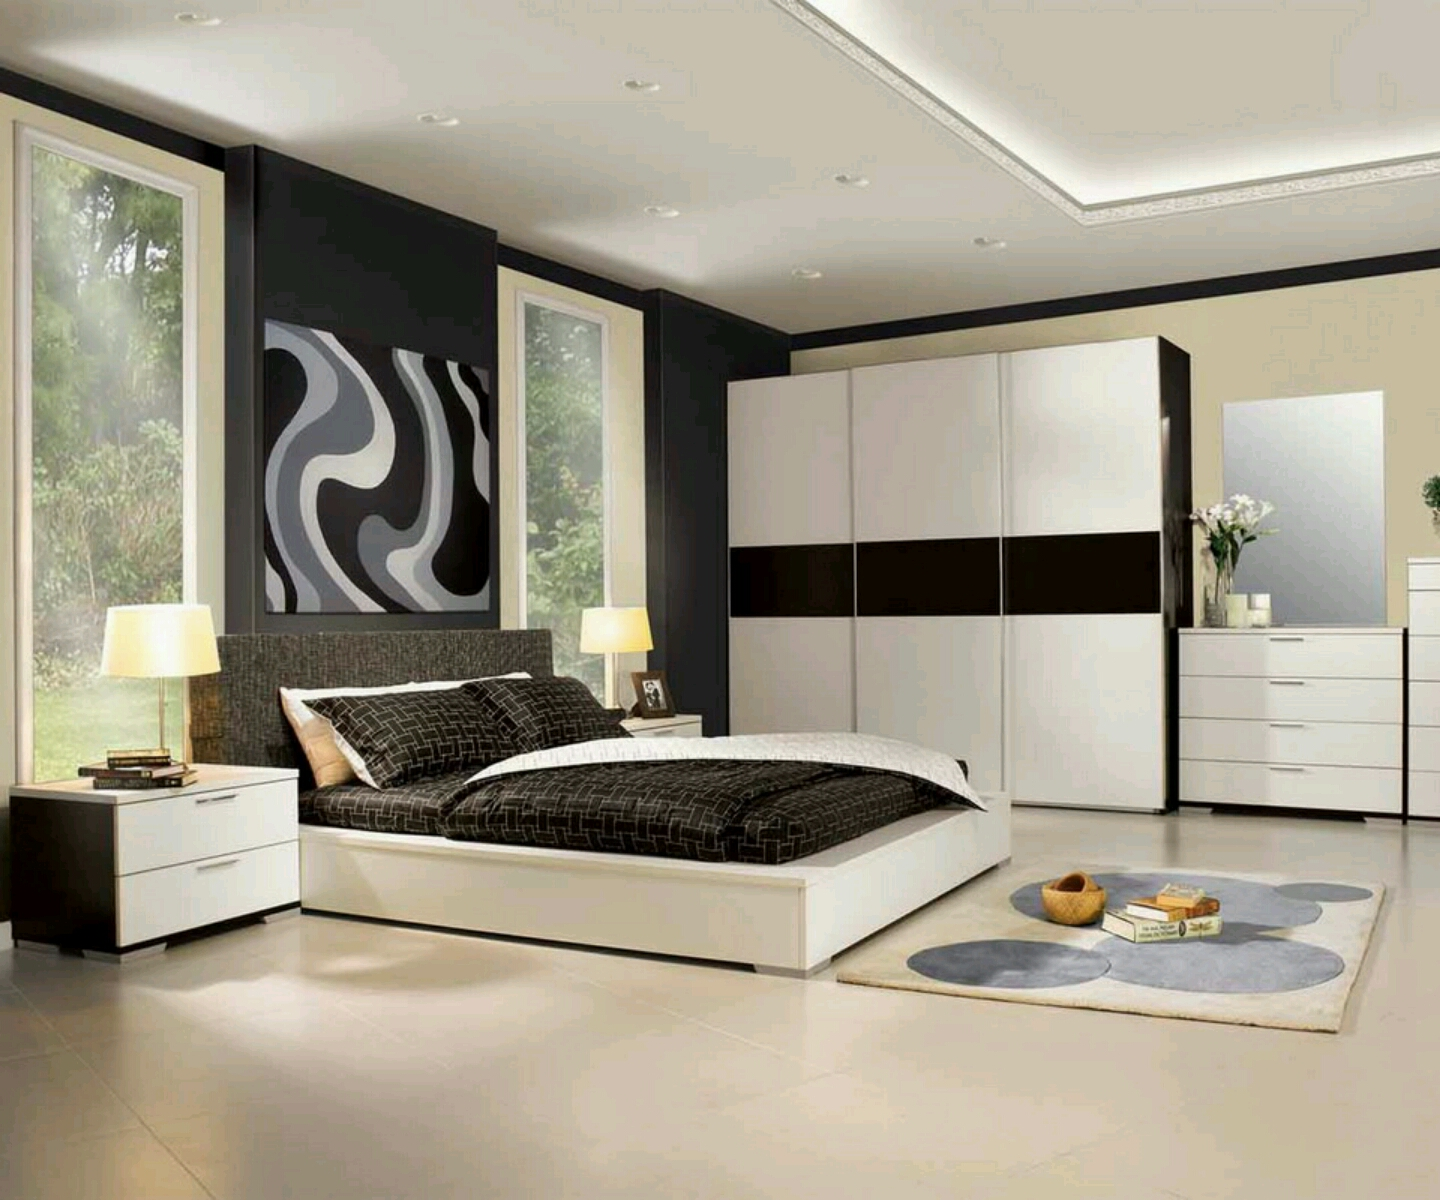 Best design home december 2012 for Bedroom furniture ideas